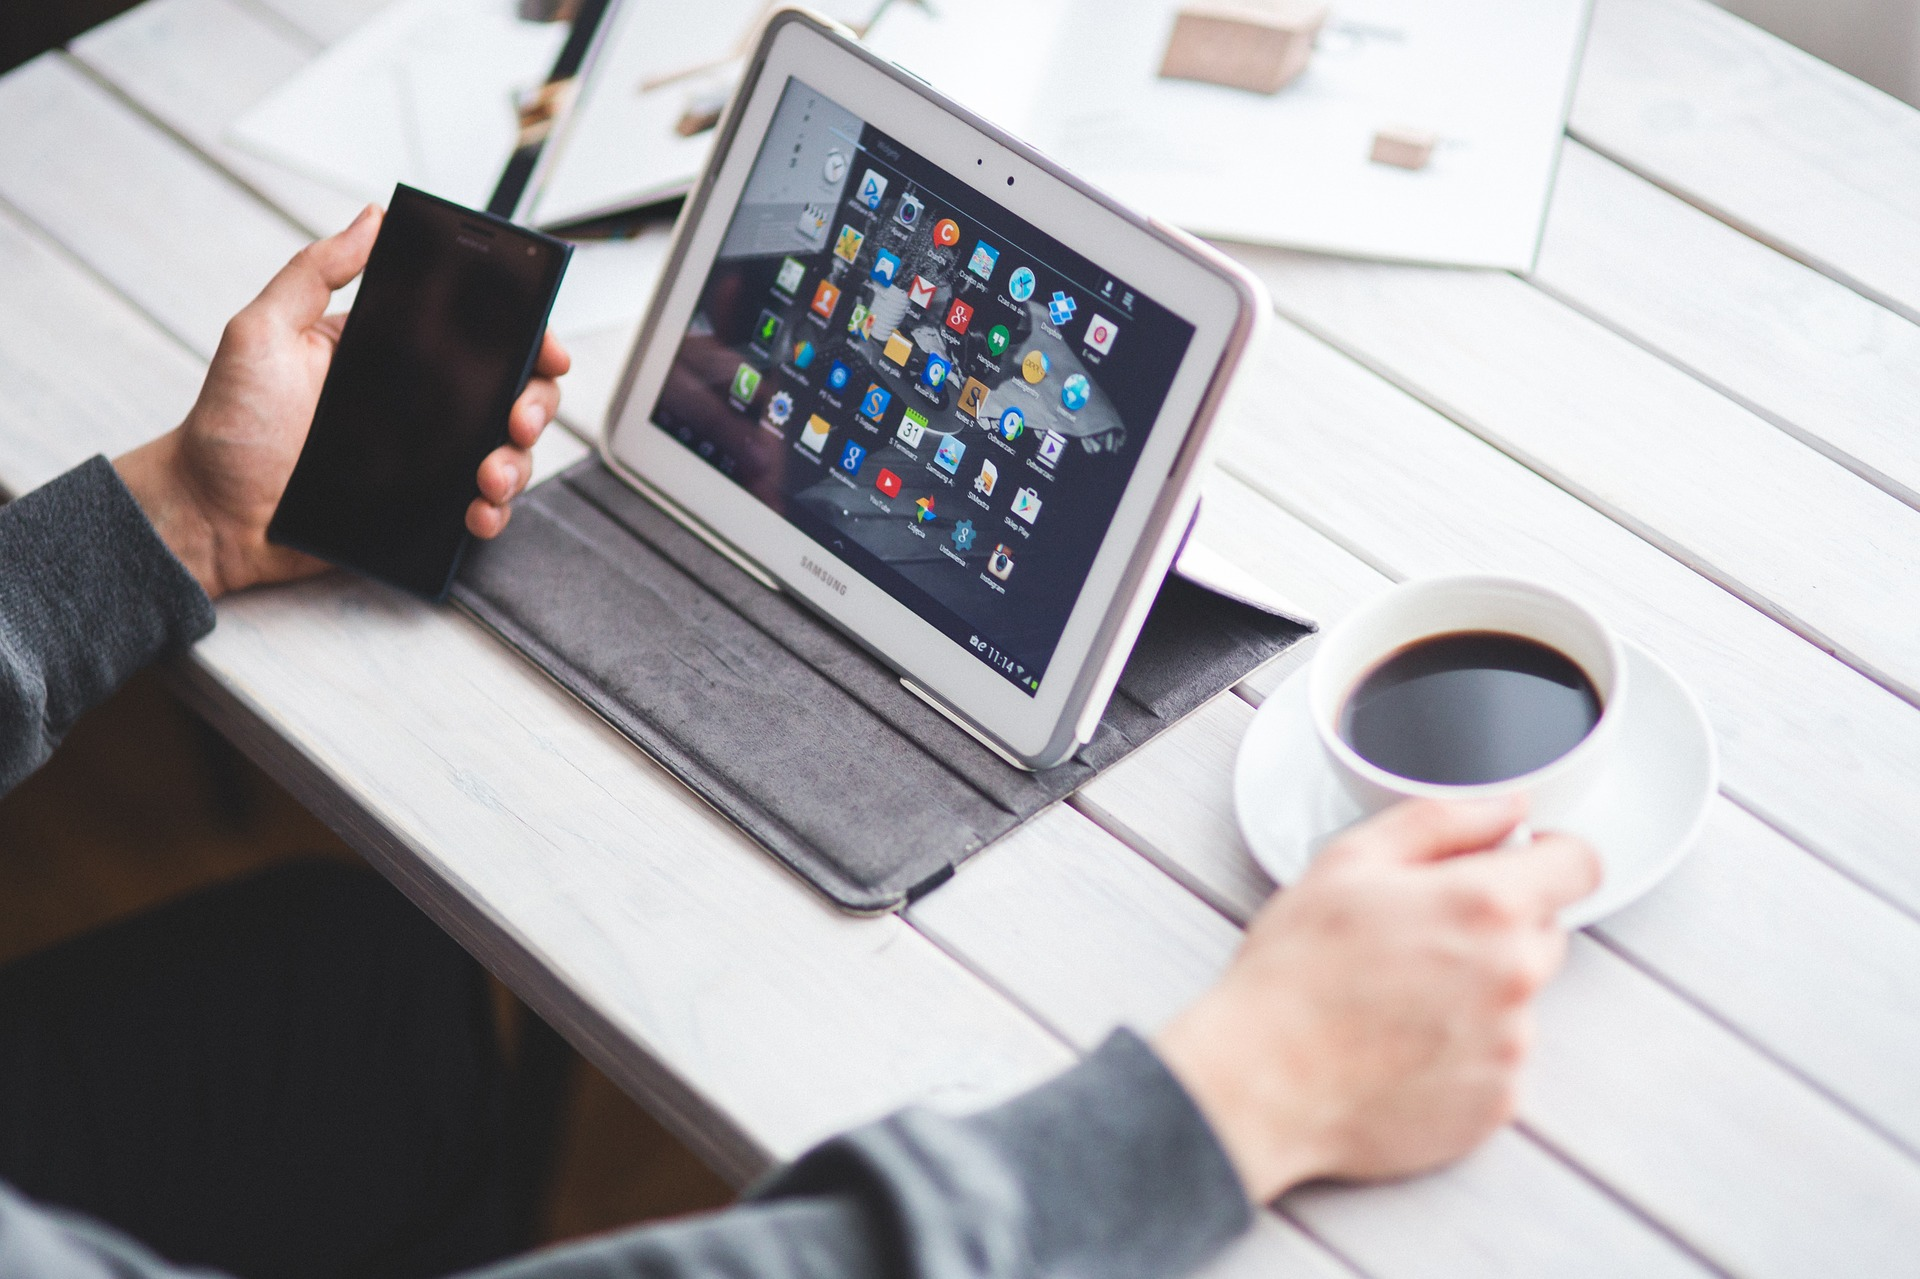 Person Uses a Smartphone and a Laptop at the Same Time While Seated at a Wooden Table with a Cup of Coffee